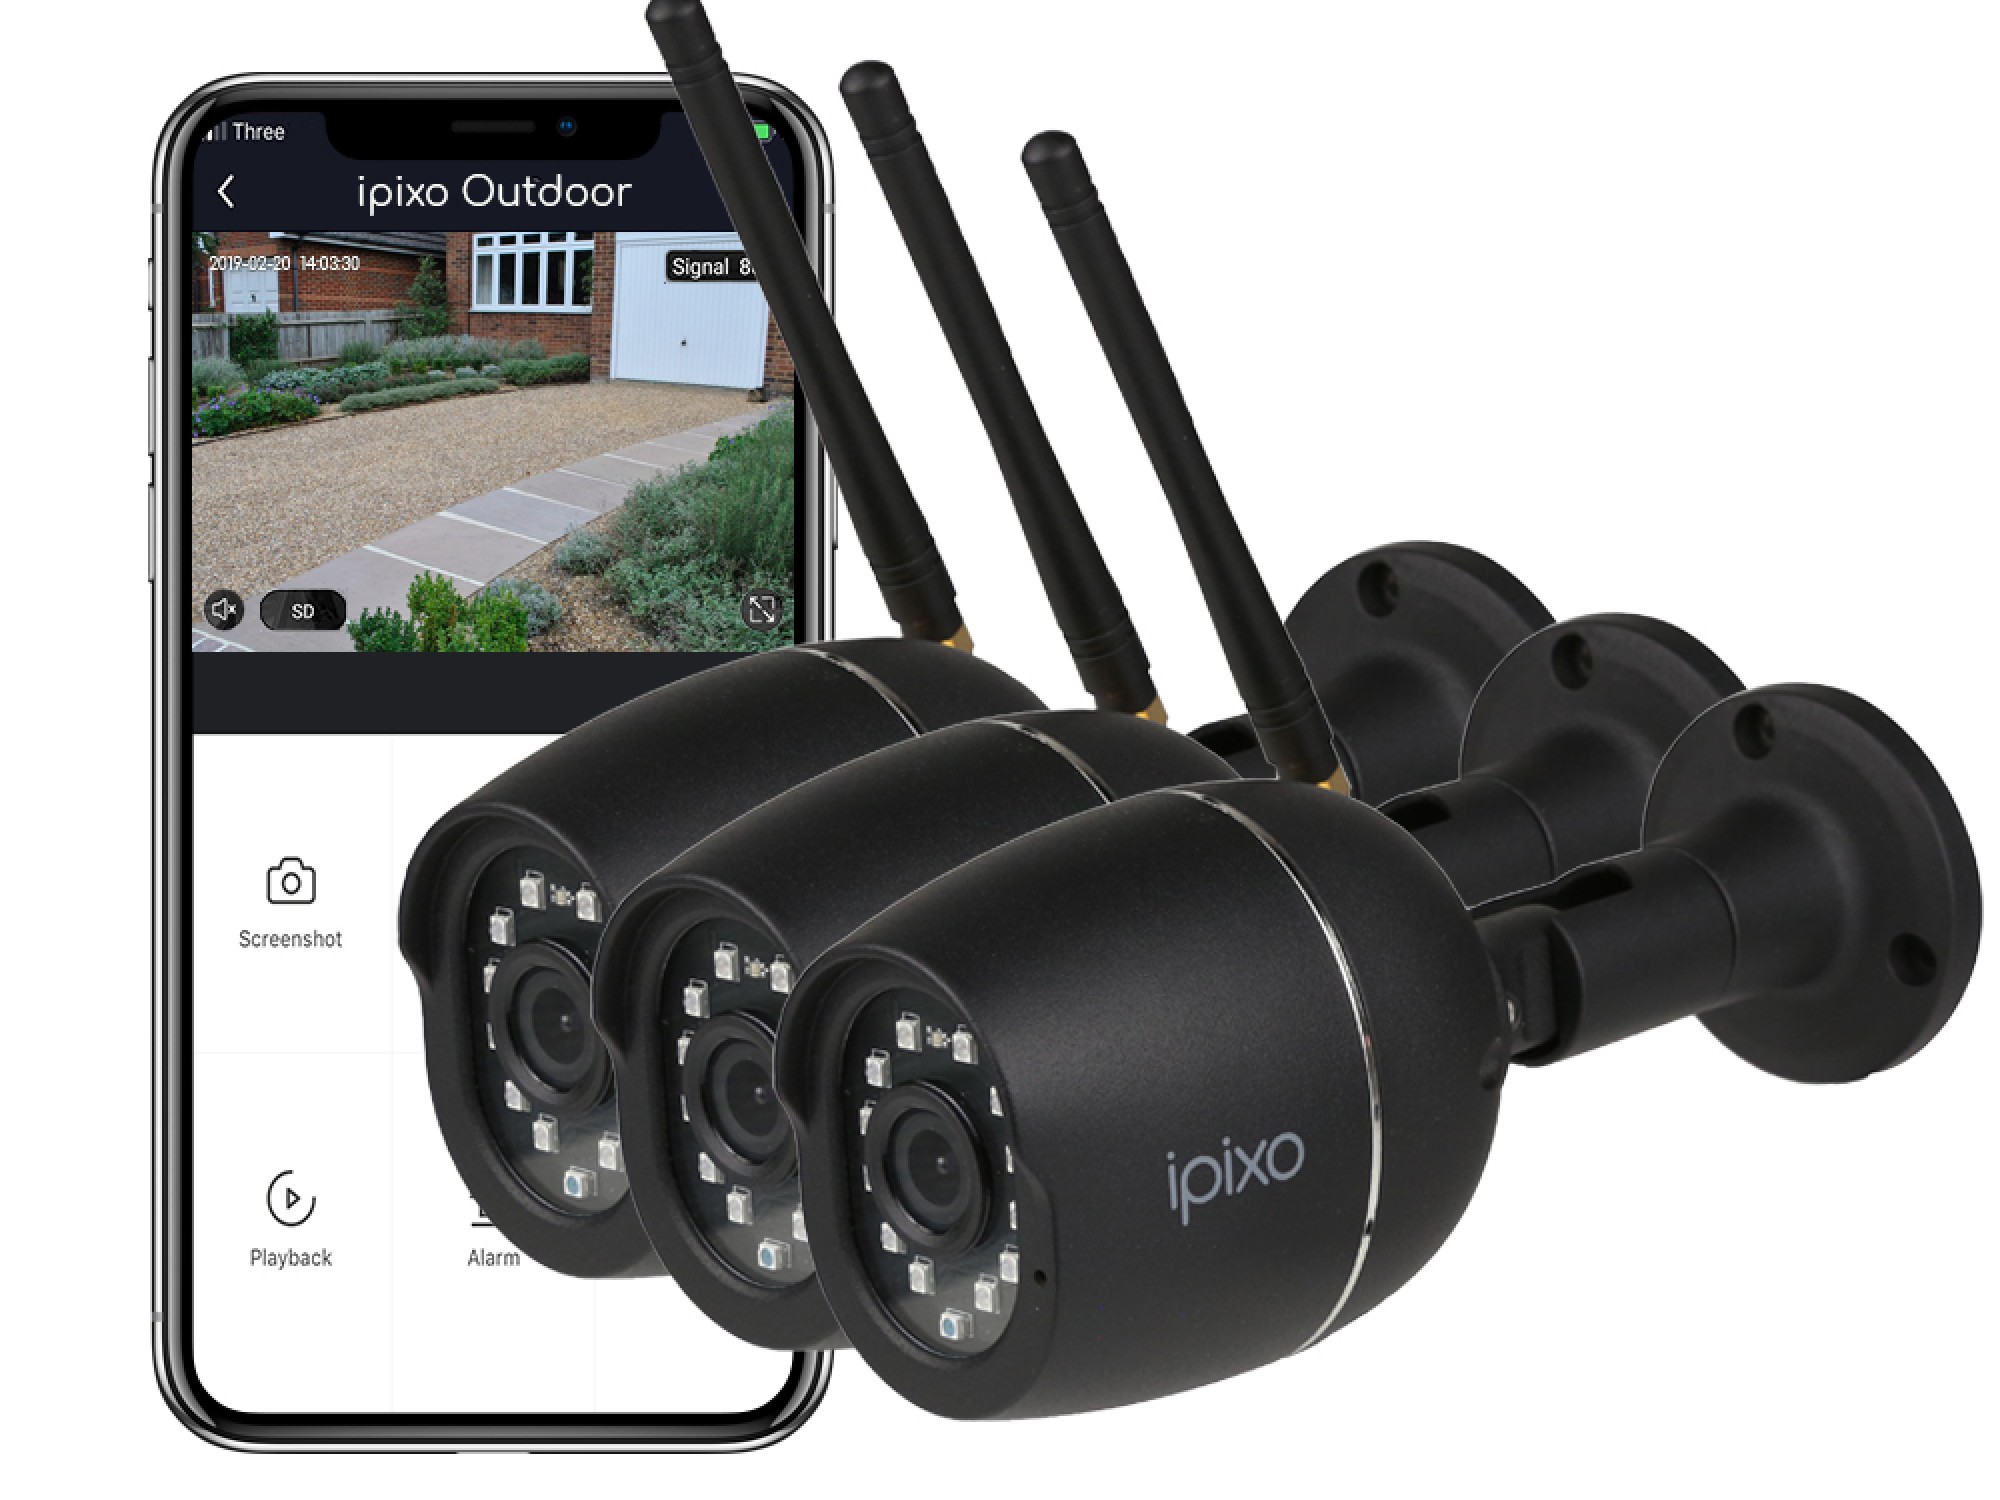 New ipixo Outdoor WiFi 1080p Security Camera (Triple pack)